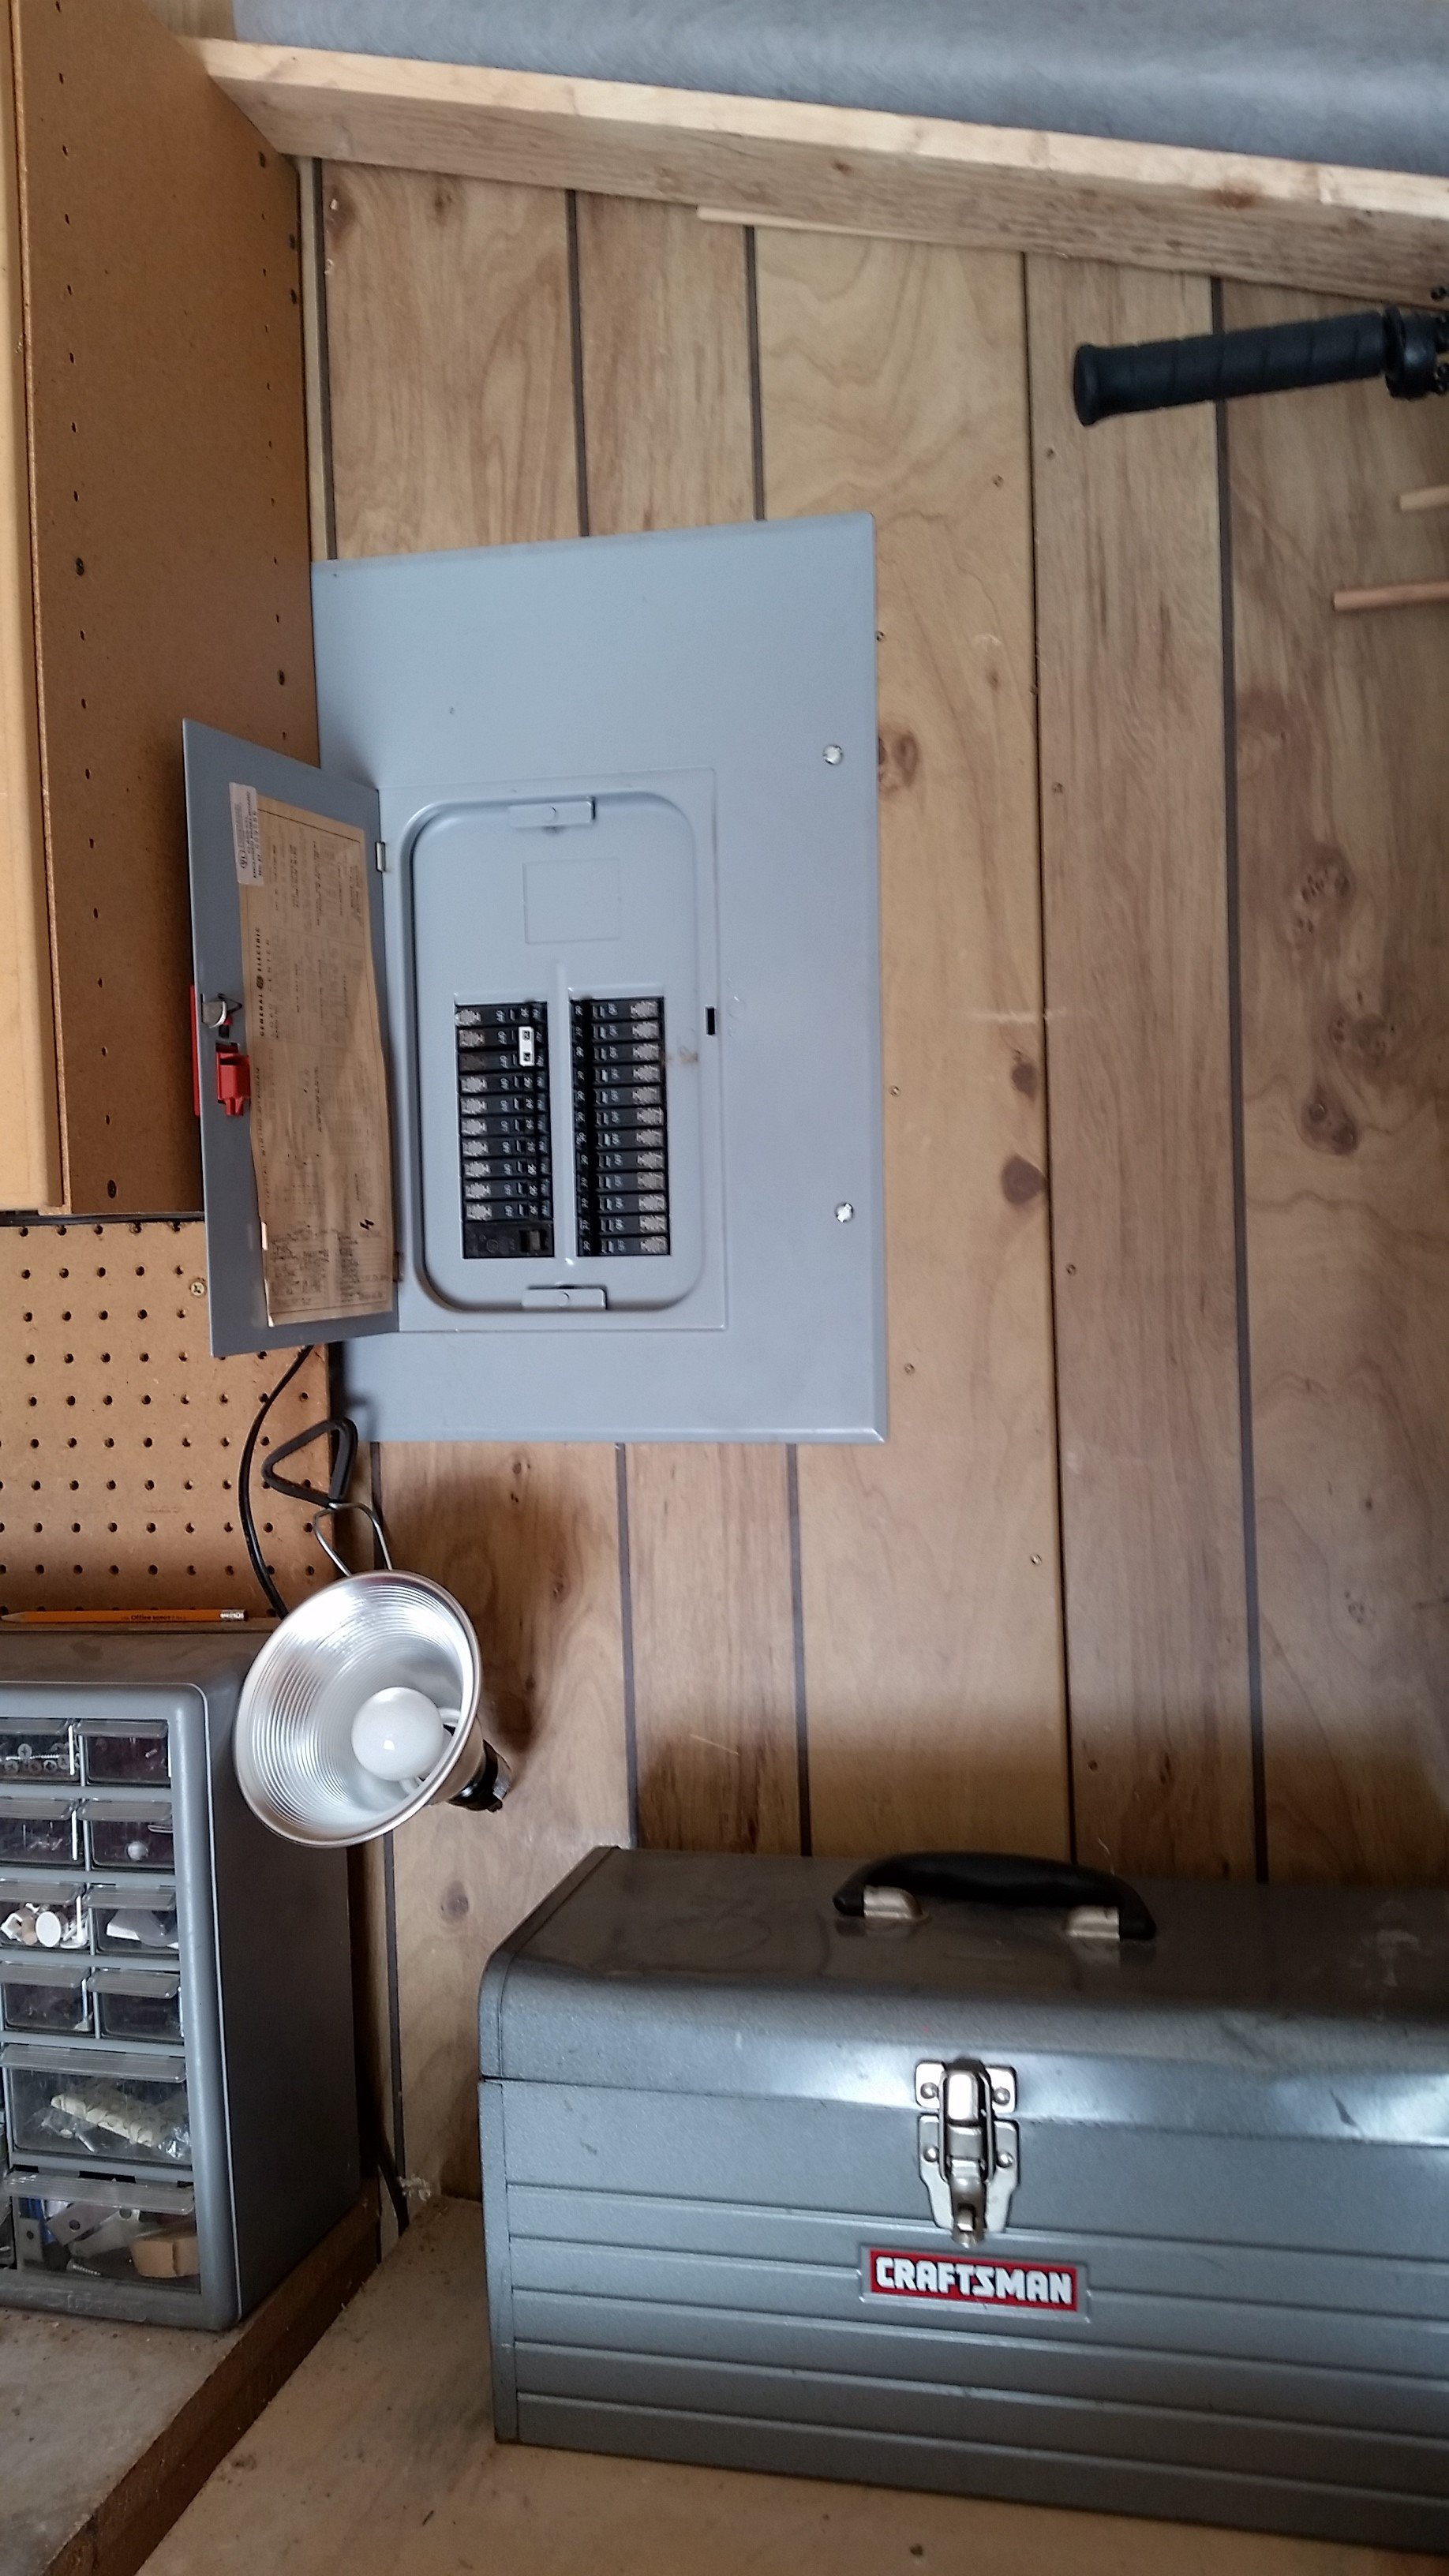 I Purchased A Ring Pro Video Doorbell And Need To Replace My Existing Doorbell Transformer To Provide 16vac To The New